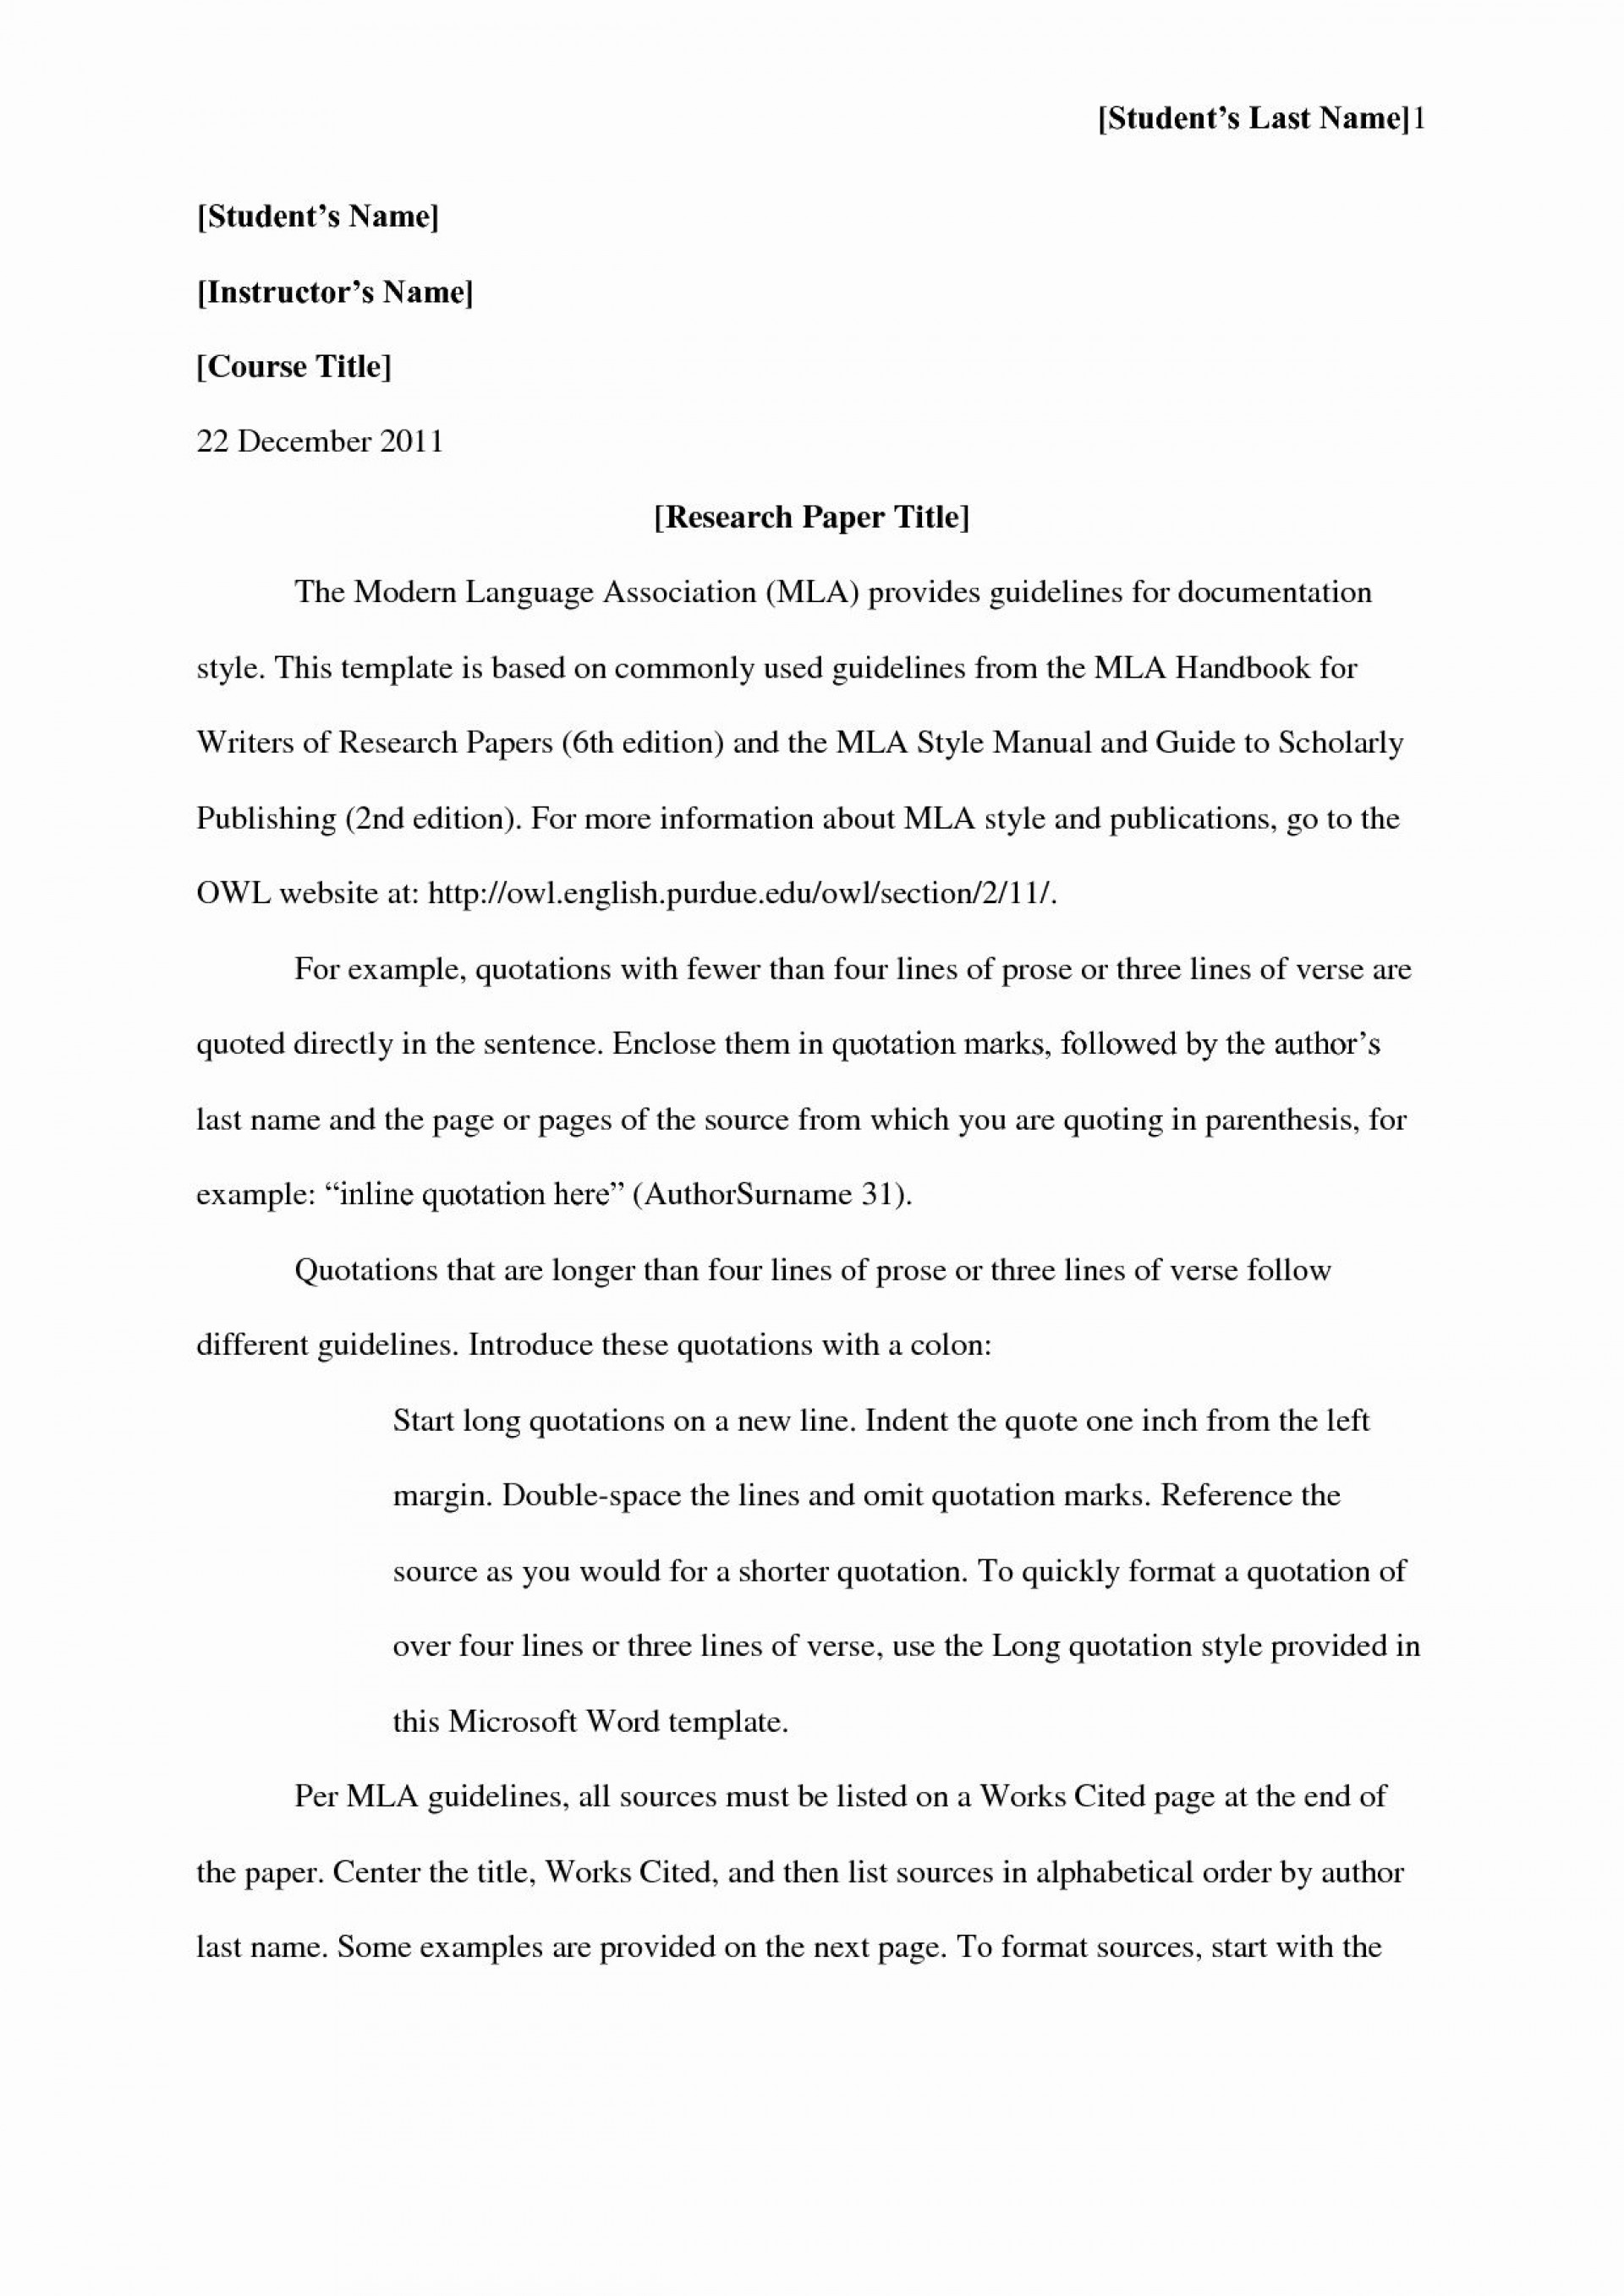 024 Mla Title Page Template Awesome Format Works Cited Scarlet Letter Best Of Apa Style Essay Example Research Paper Amazing With 1920